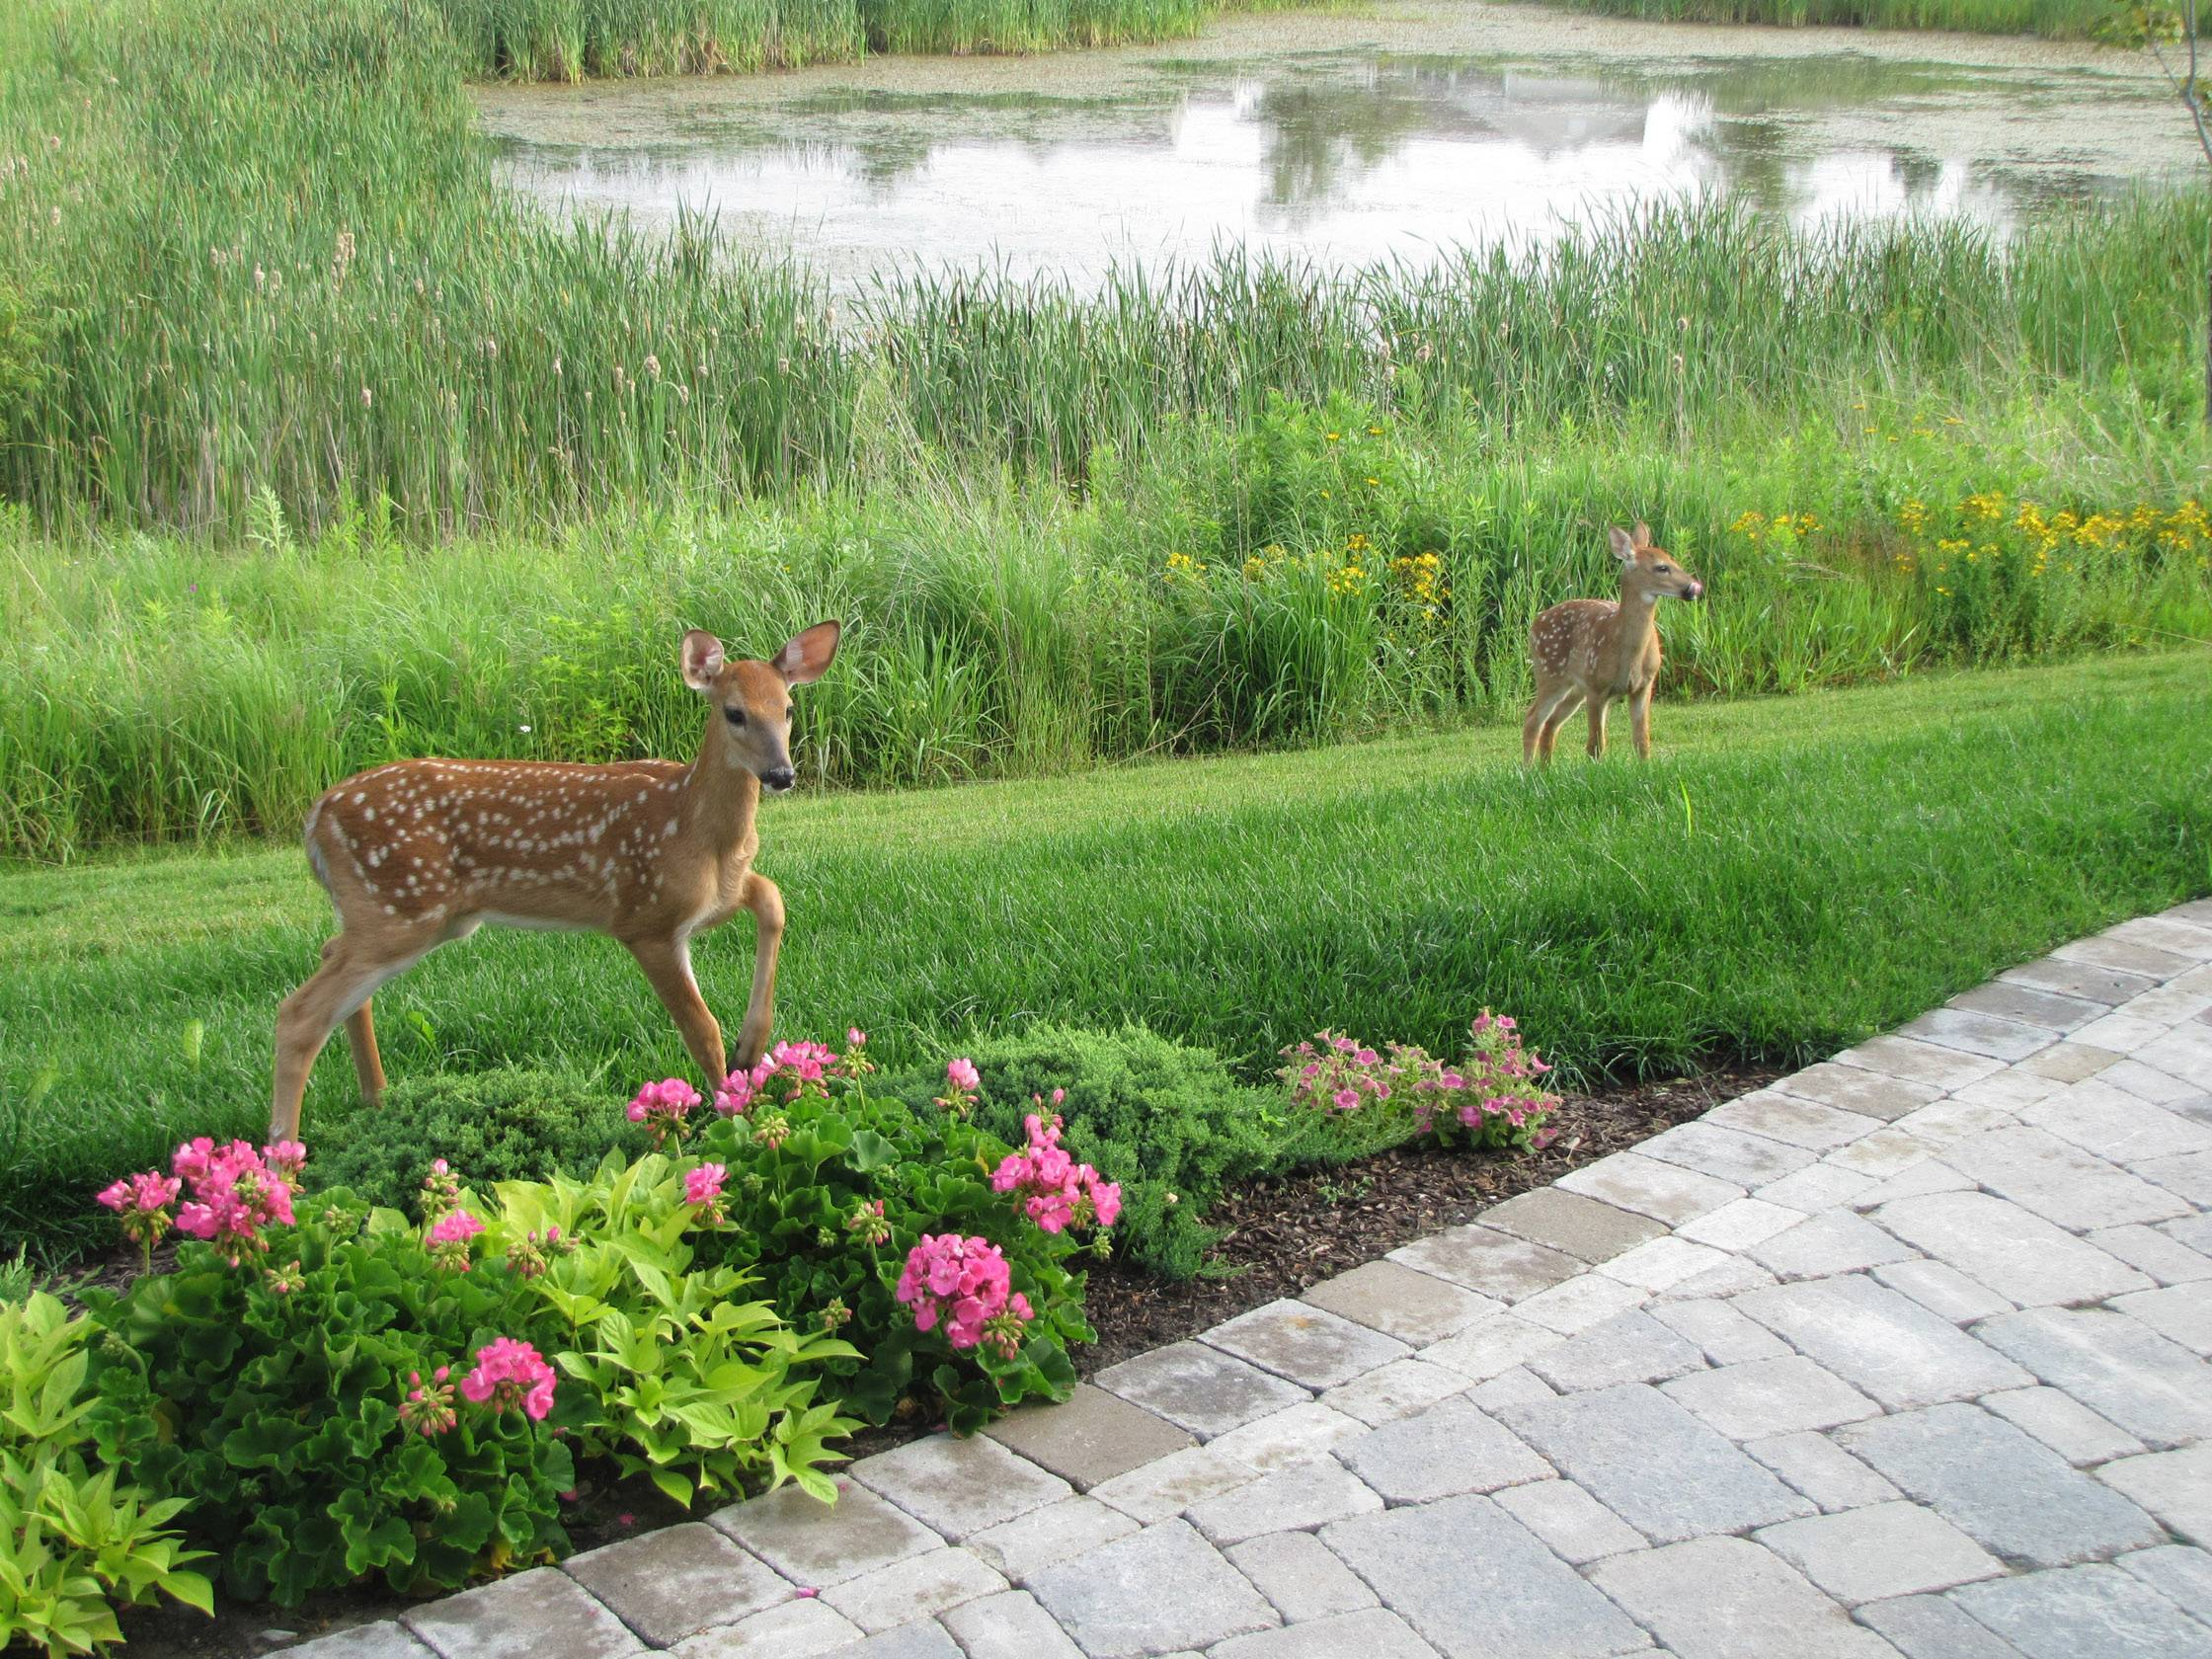 Two fawns eat flowers in Dell Webb Grand Dominion community in Mundelein.